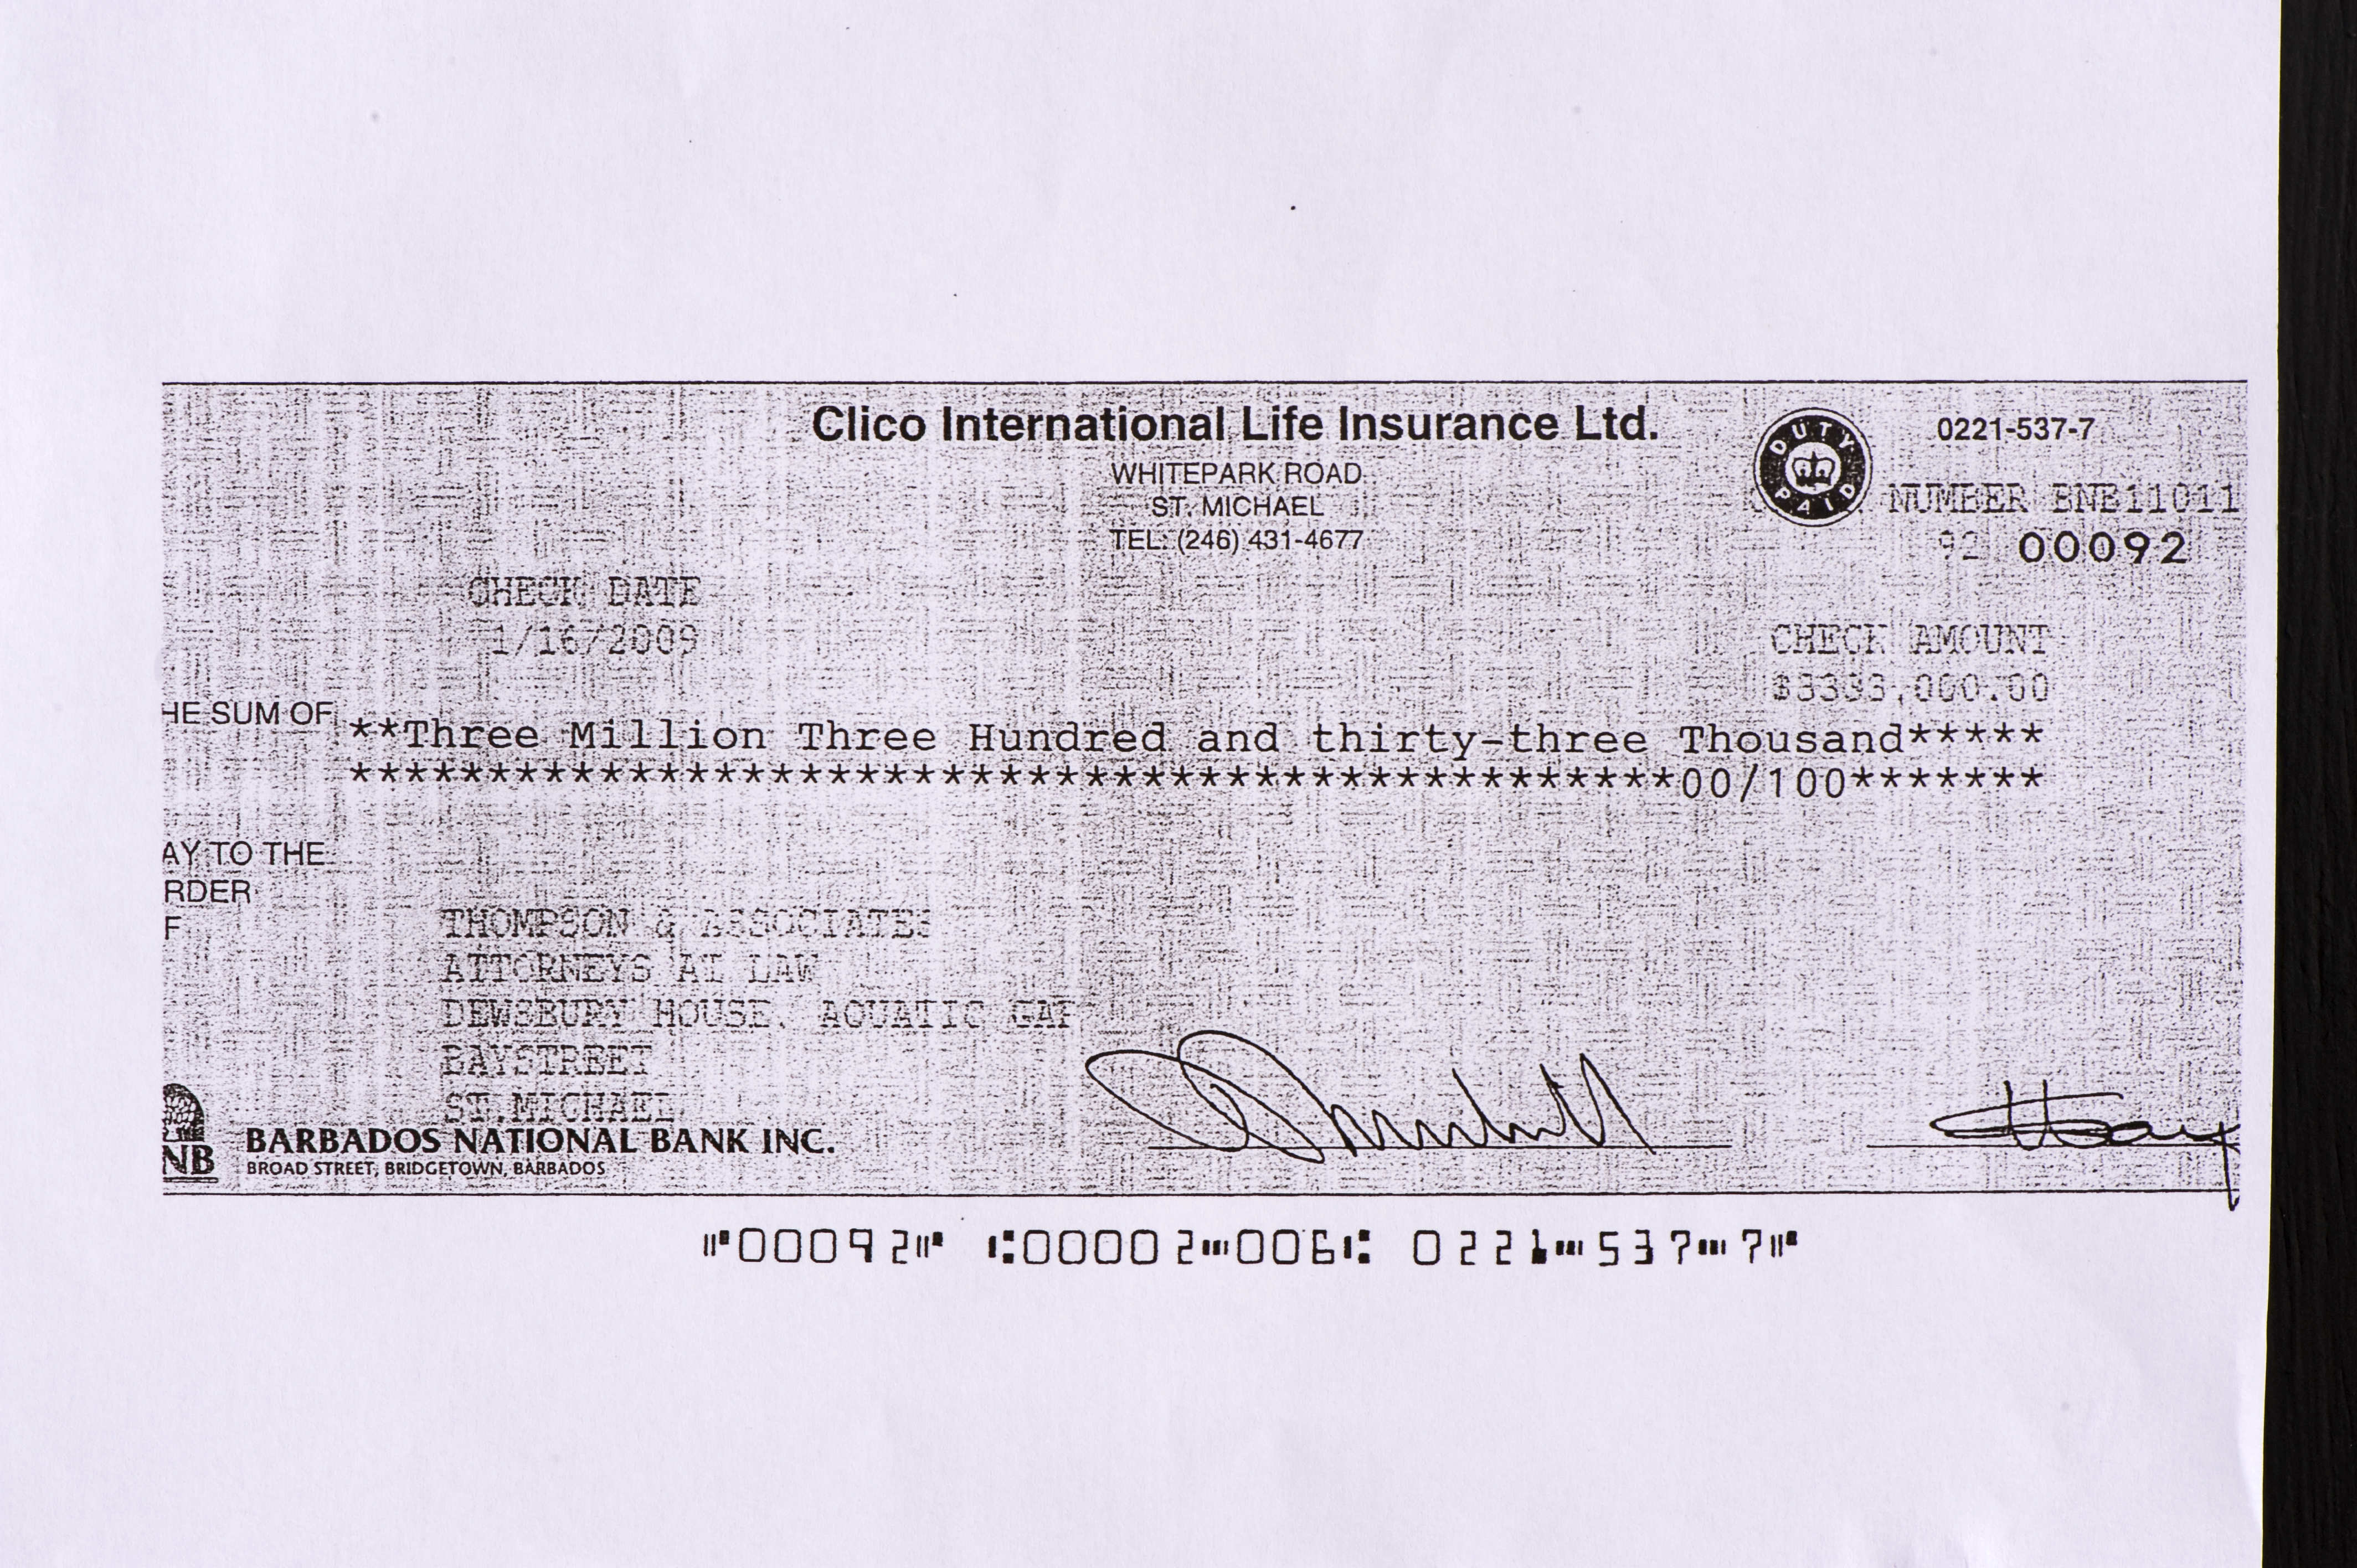 Template For Cash Receipt When Will The Director Of Public Prosecutions Charles Leacock Act  Saks Return Without Receipt Pdf with Best Invoice Software Mac The Invoice To Support The Payment Was Found To Be A False Invoice  Maurice King Lawyer Is Listed On The  Invoicing Management System Word